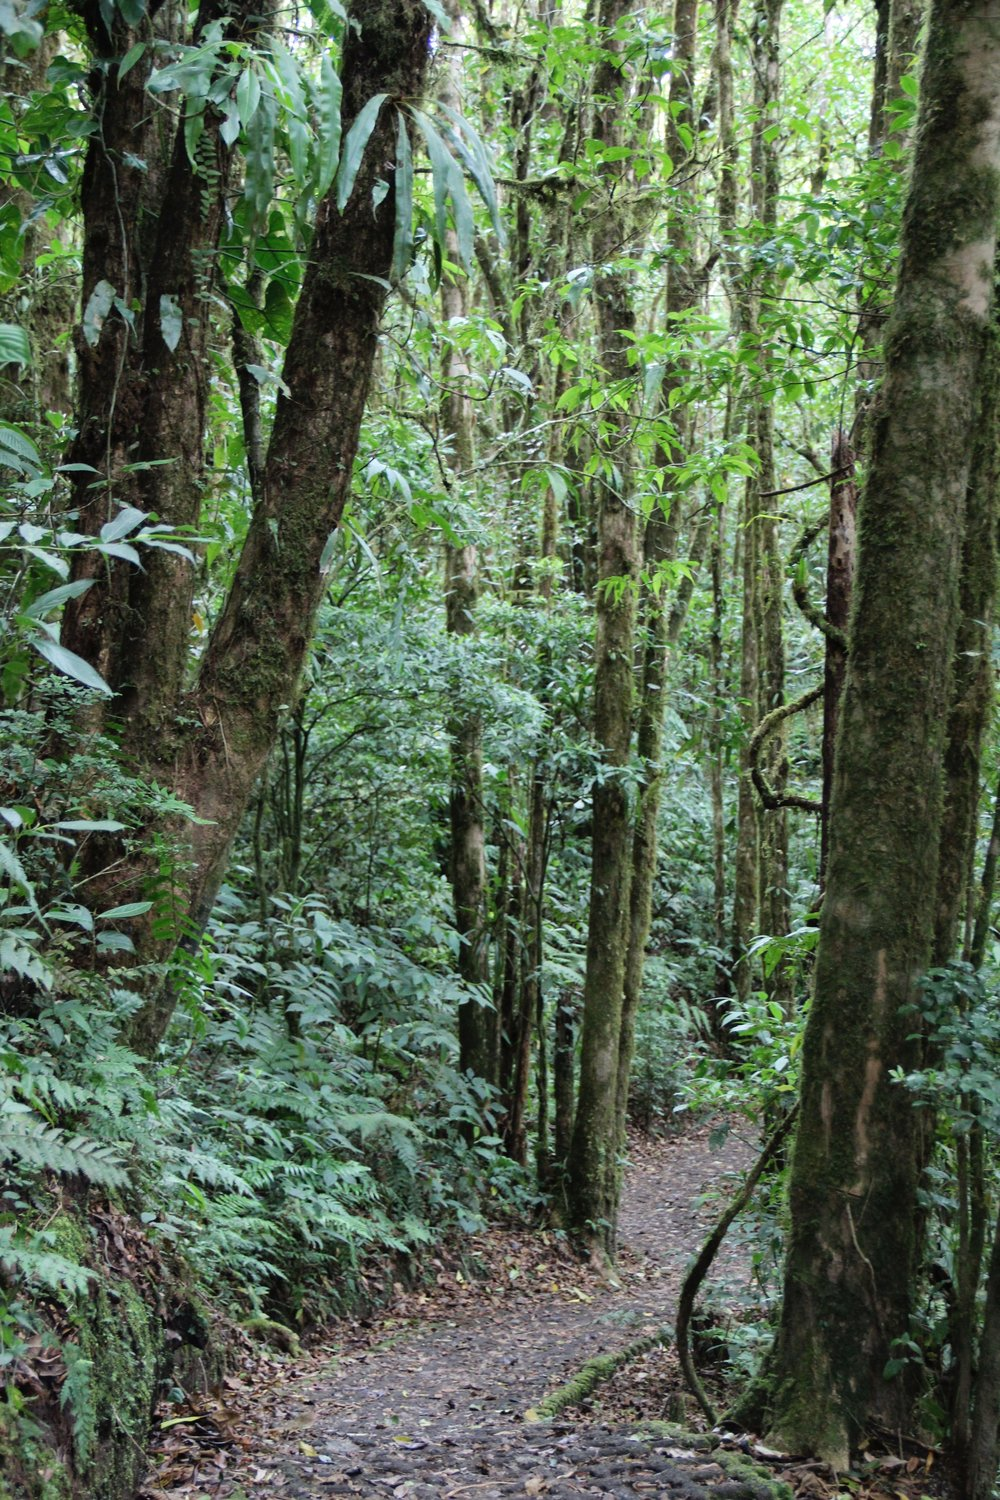 The long and winding path we followed to explore the Monte Verde rain forestfrom the floor